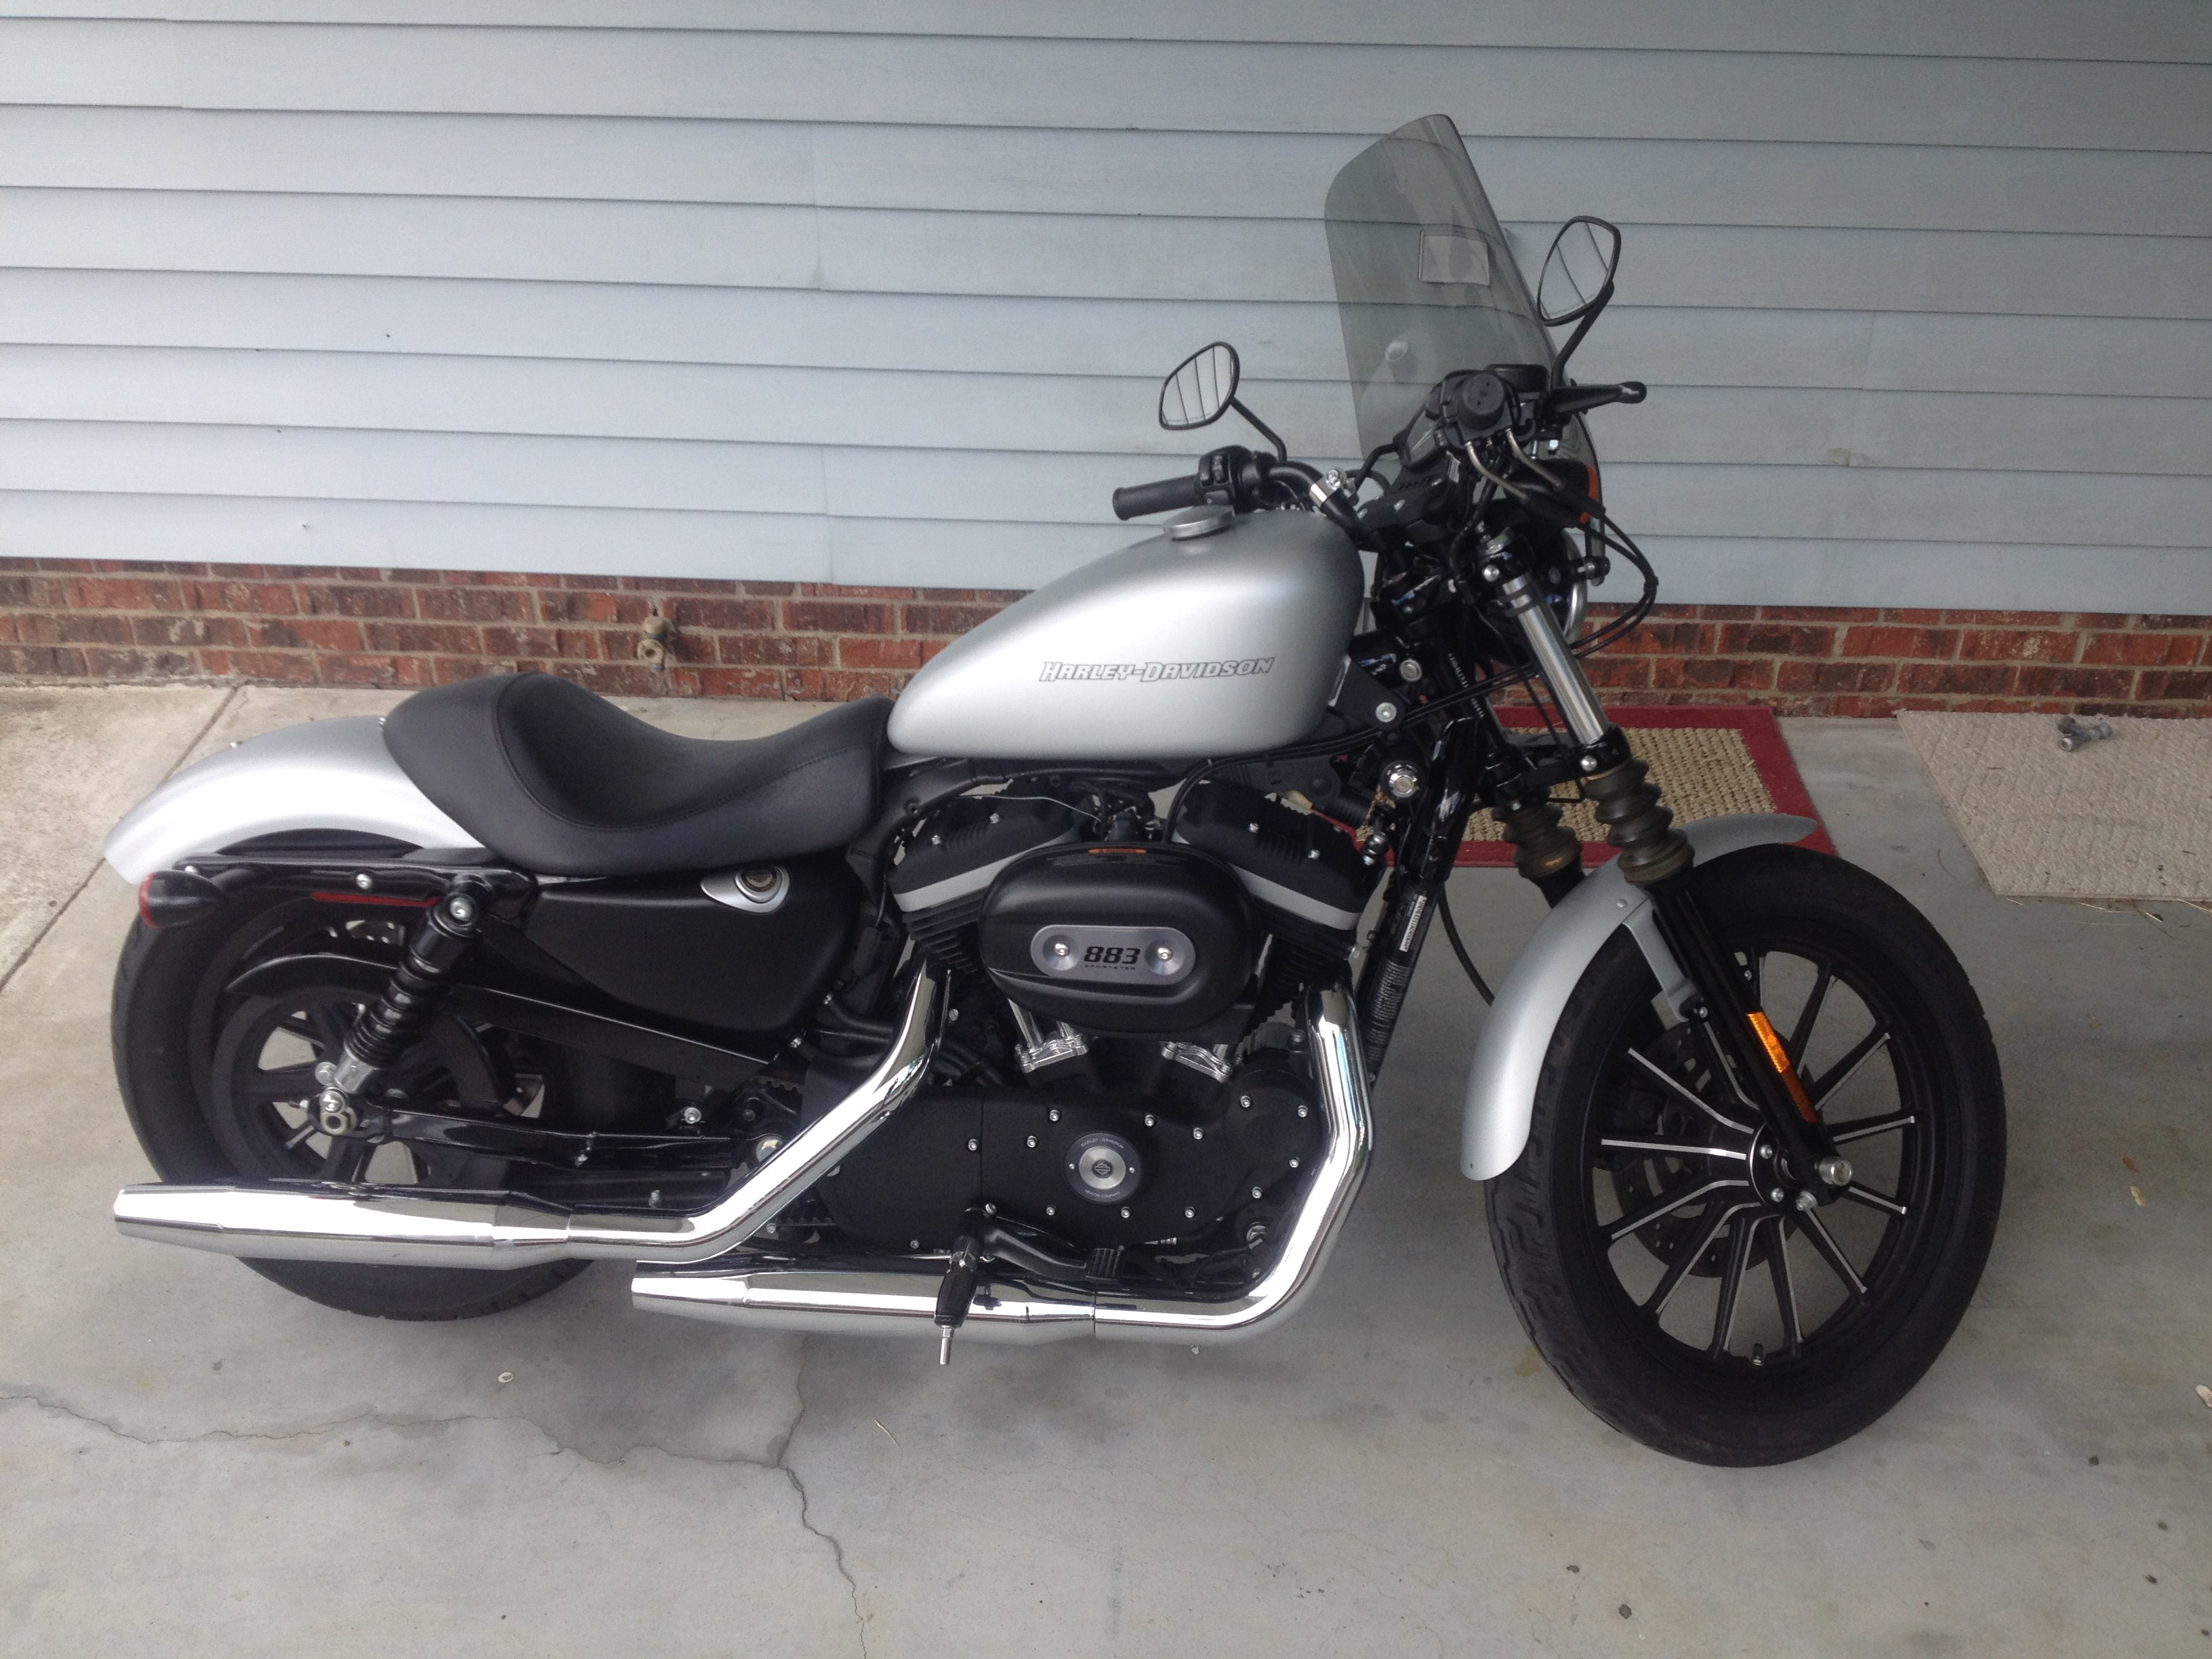 94 Sportster 1200 Xl No Spark Kindo Of Long Need ... on